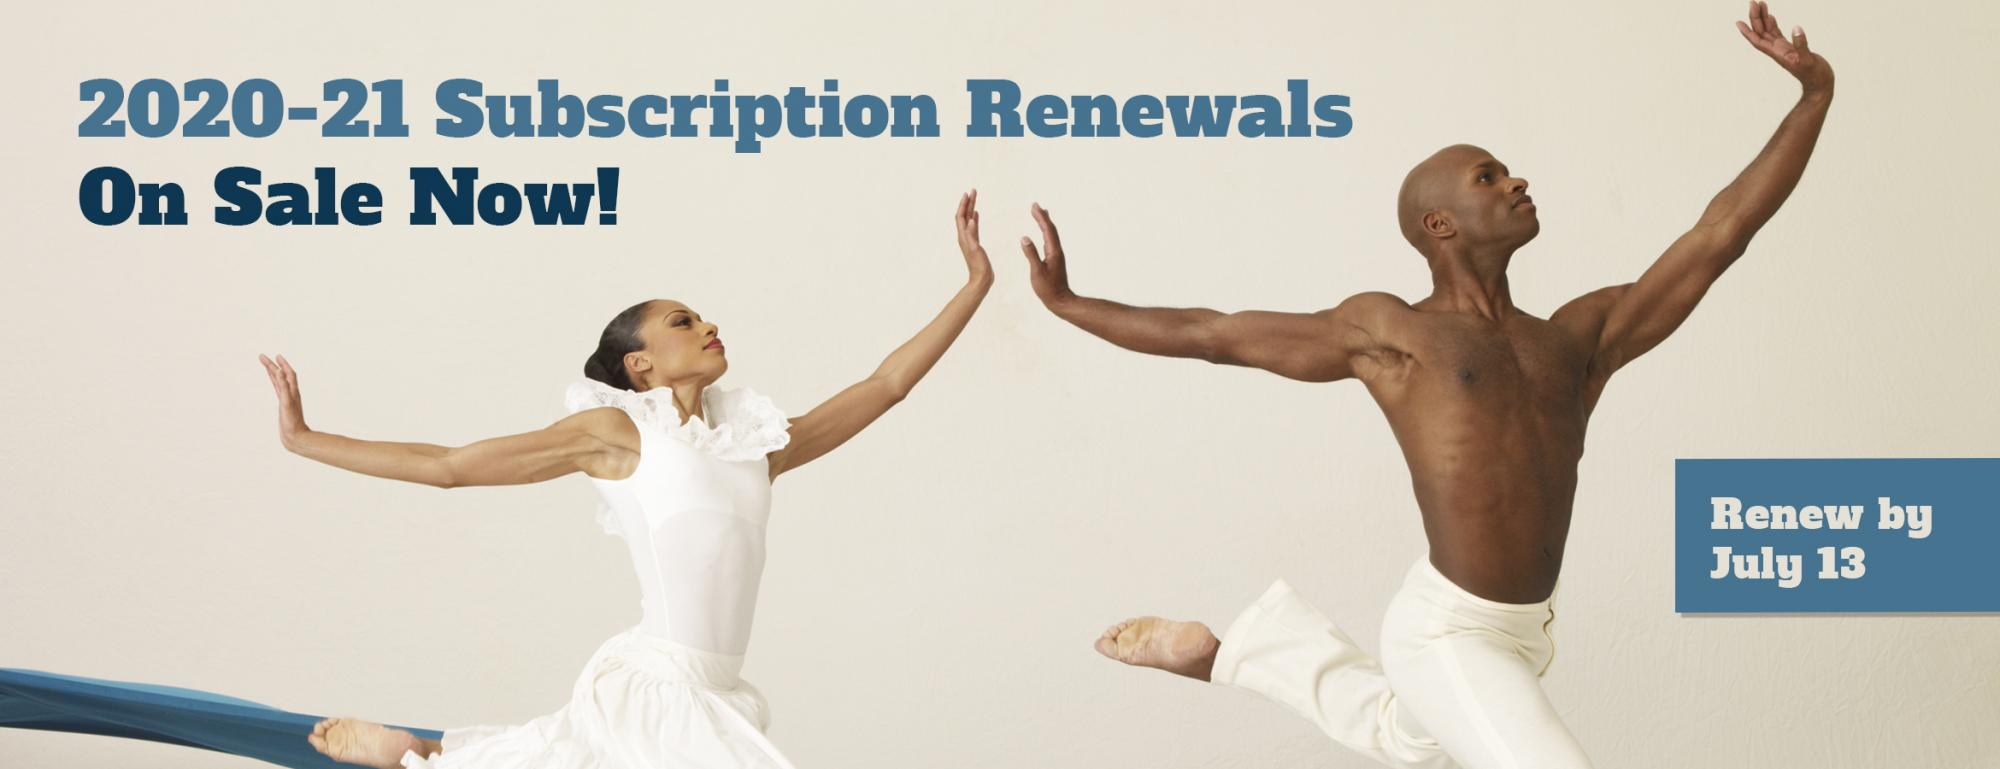 20-21 Subscription Renewals On Sale Now!